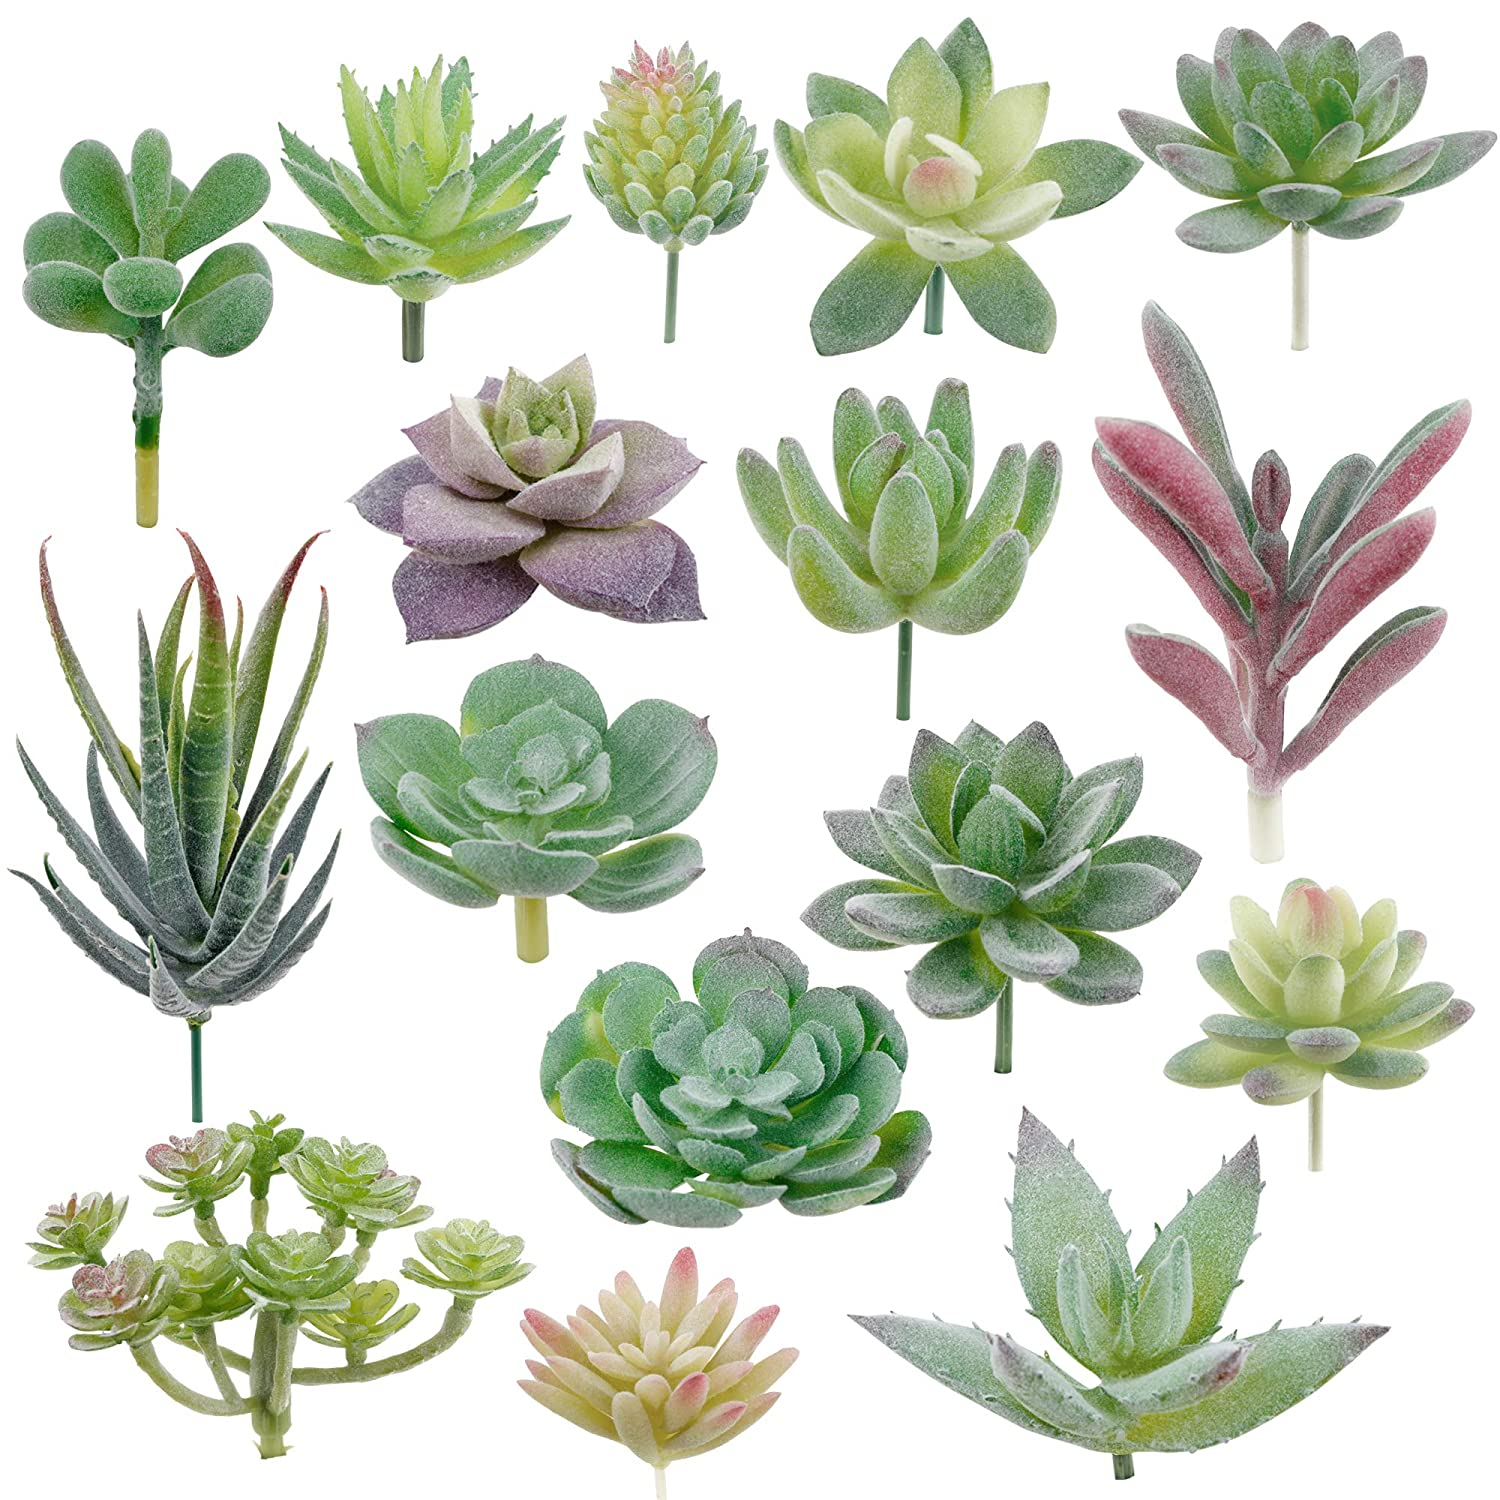 Augshy 16 Pack Artificial Succulent Flocking Plants Unpotted Mini Fake Succulents Plant for Lotus Landscape Decorative Garden Arrangement Decor